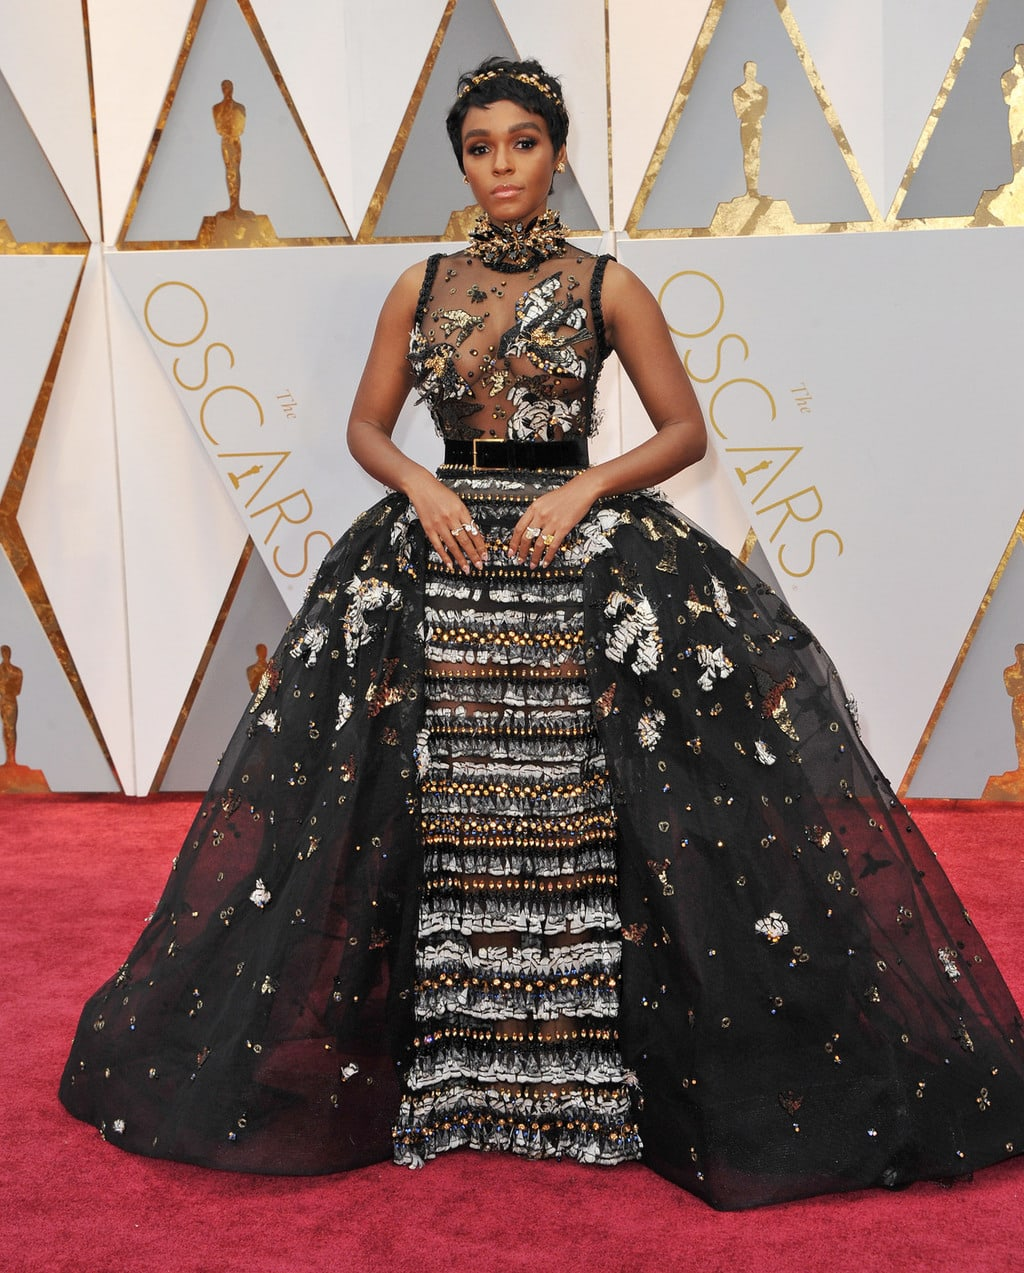 Janelle Monae in Elie Saab Couture at the 2017 Oscars